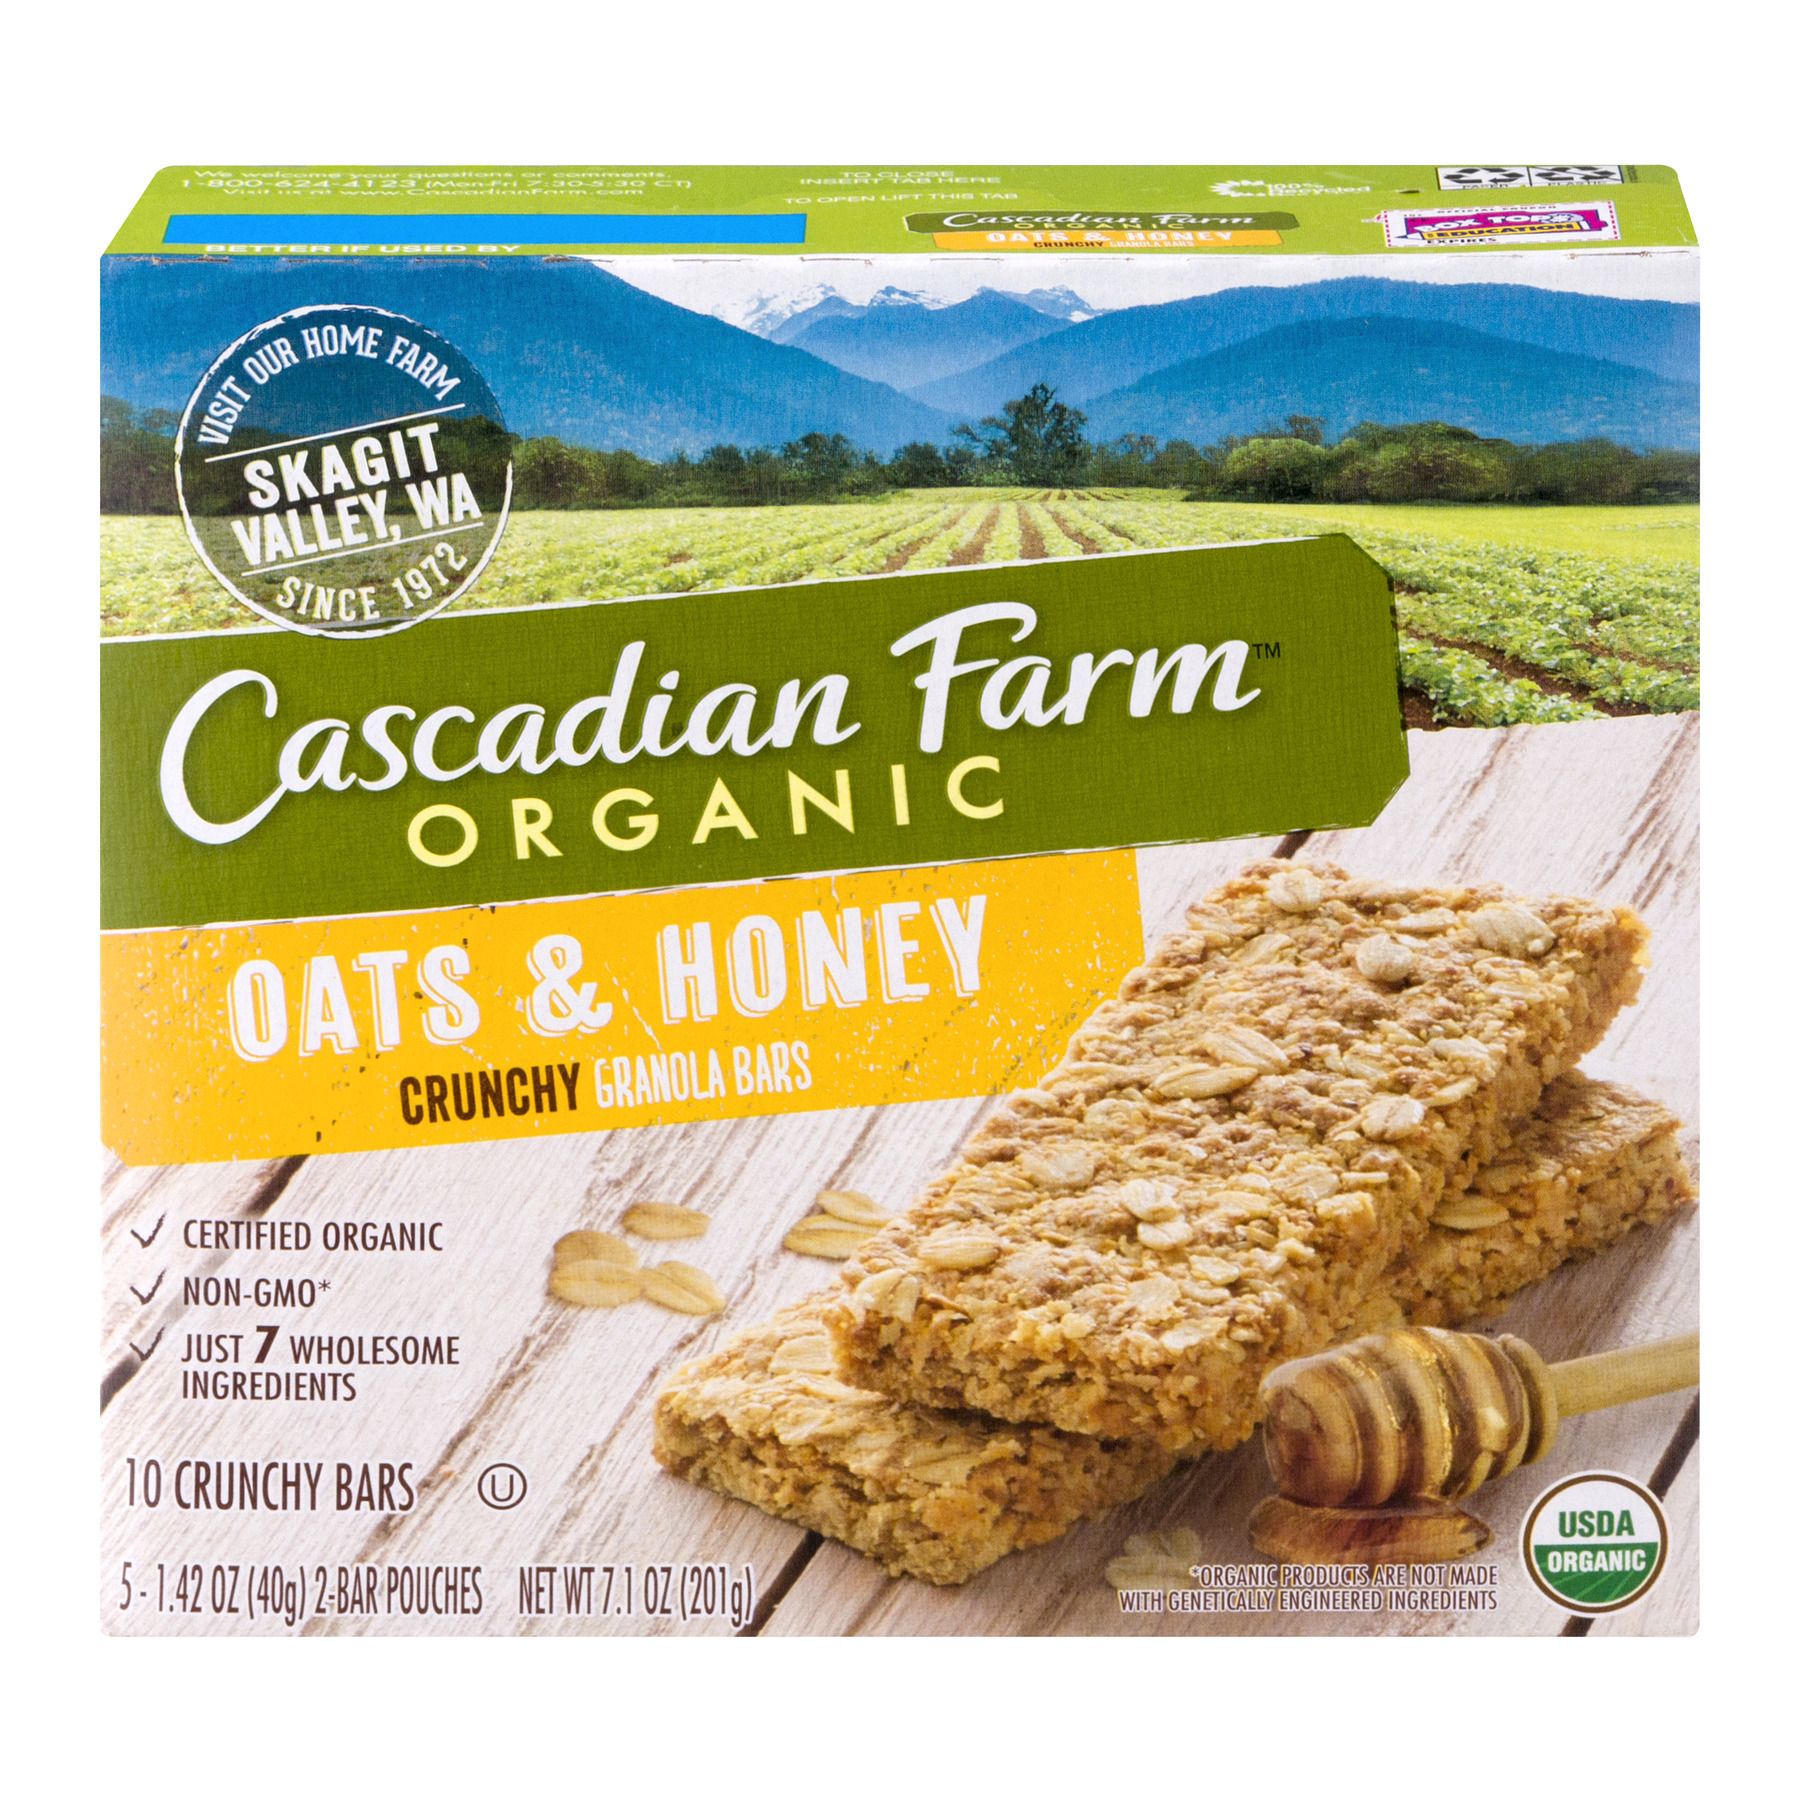 Cascadian Farm® Organic Crunchy Granola Bar non-GMO Oats and Honey 10 Bars In 5 - 1.42 oz 2-Bar Pouches